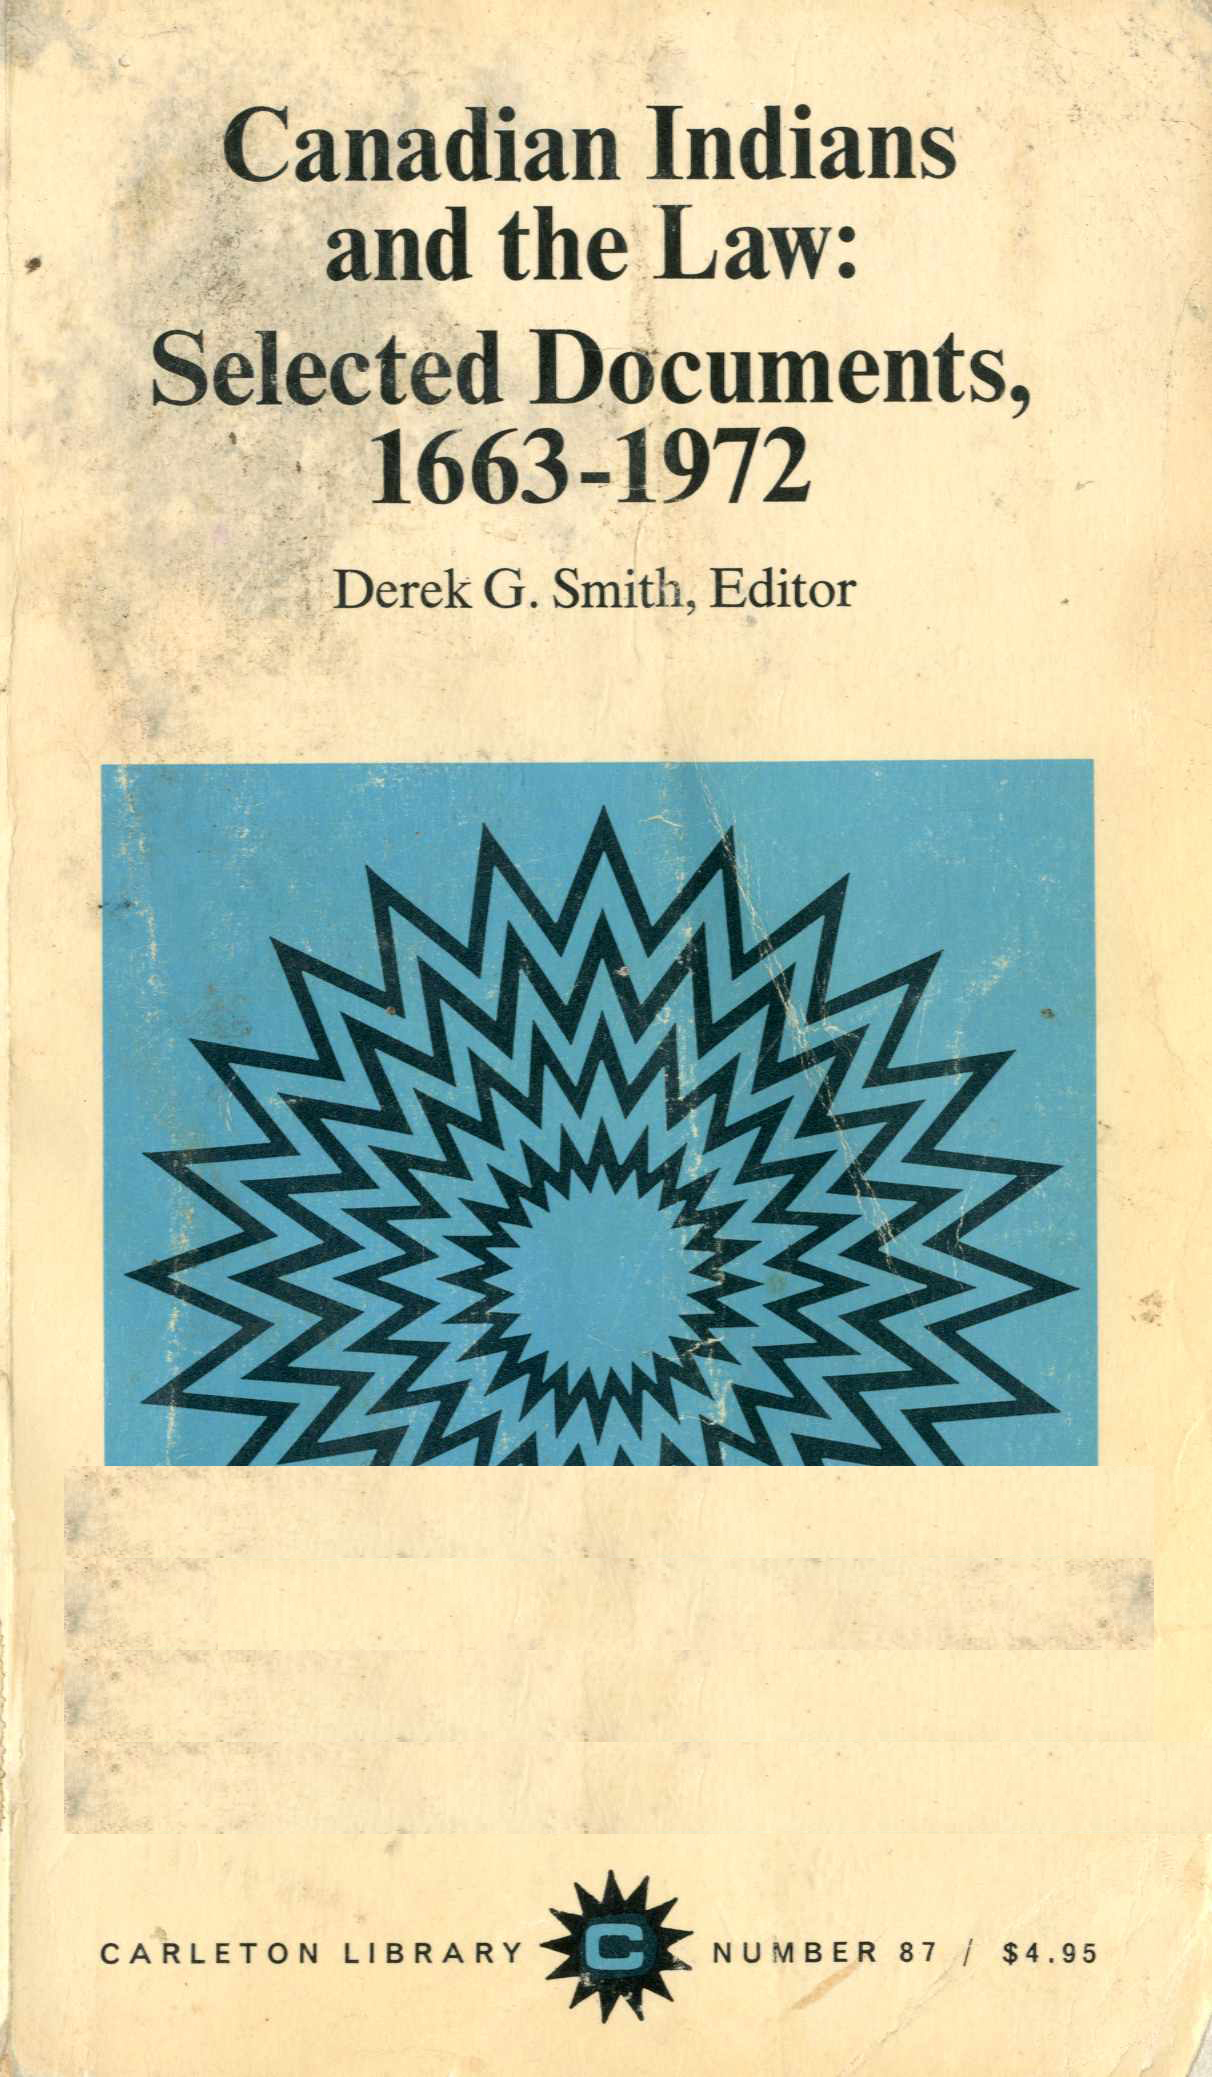 Canadian Indains and the Law: Selected Documents, 1663-1972 Image